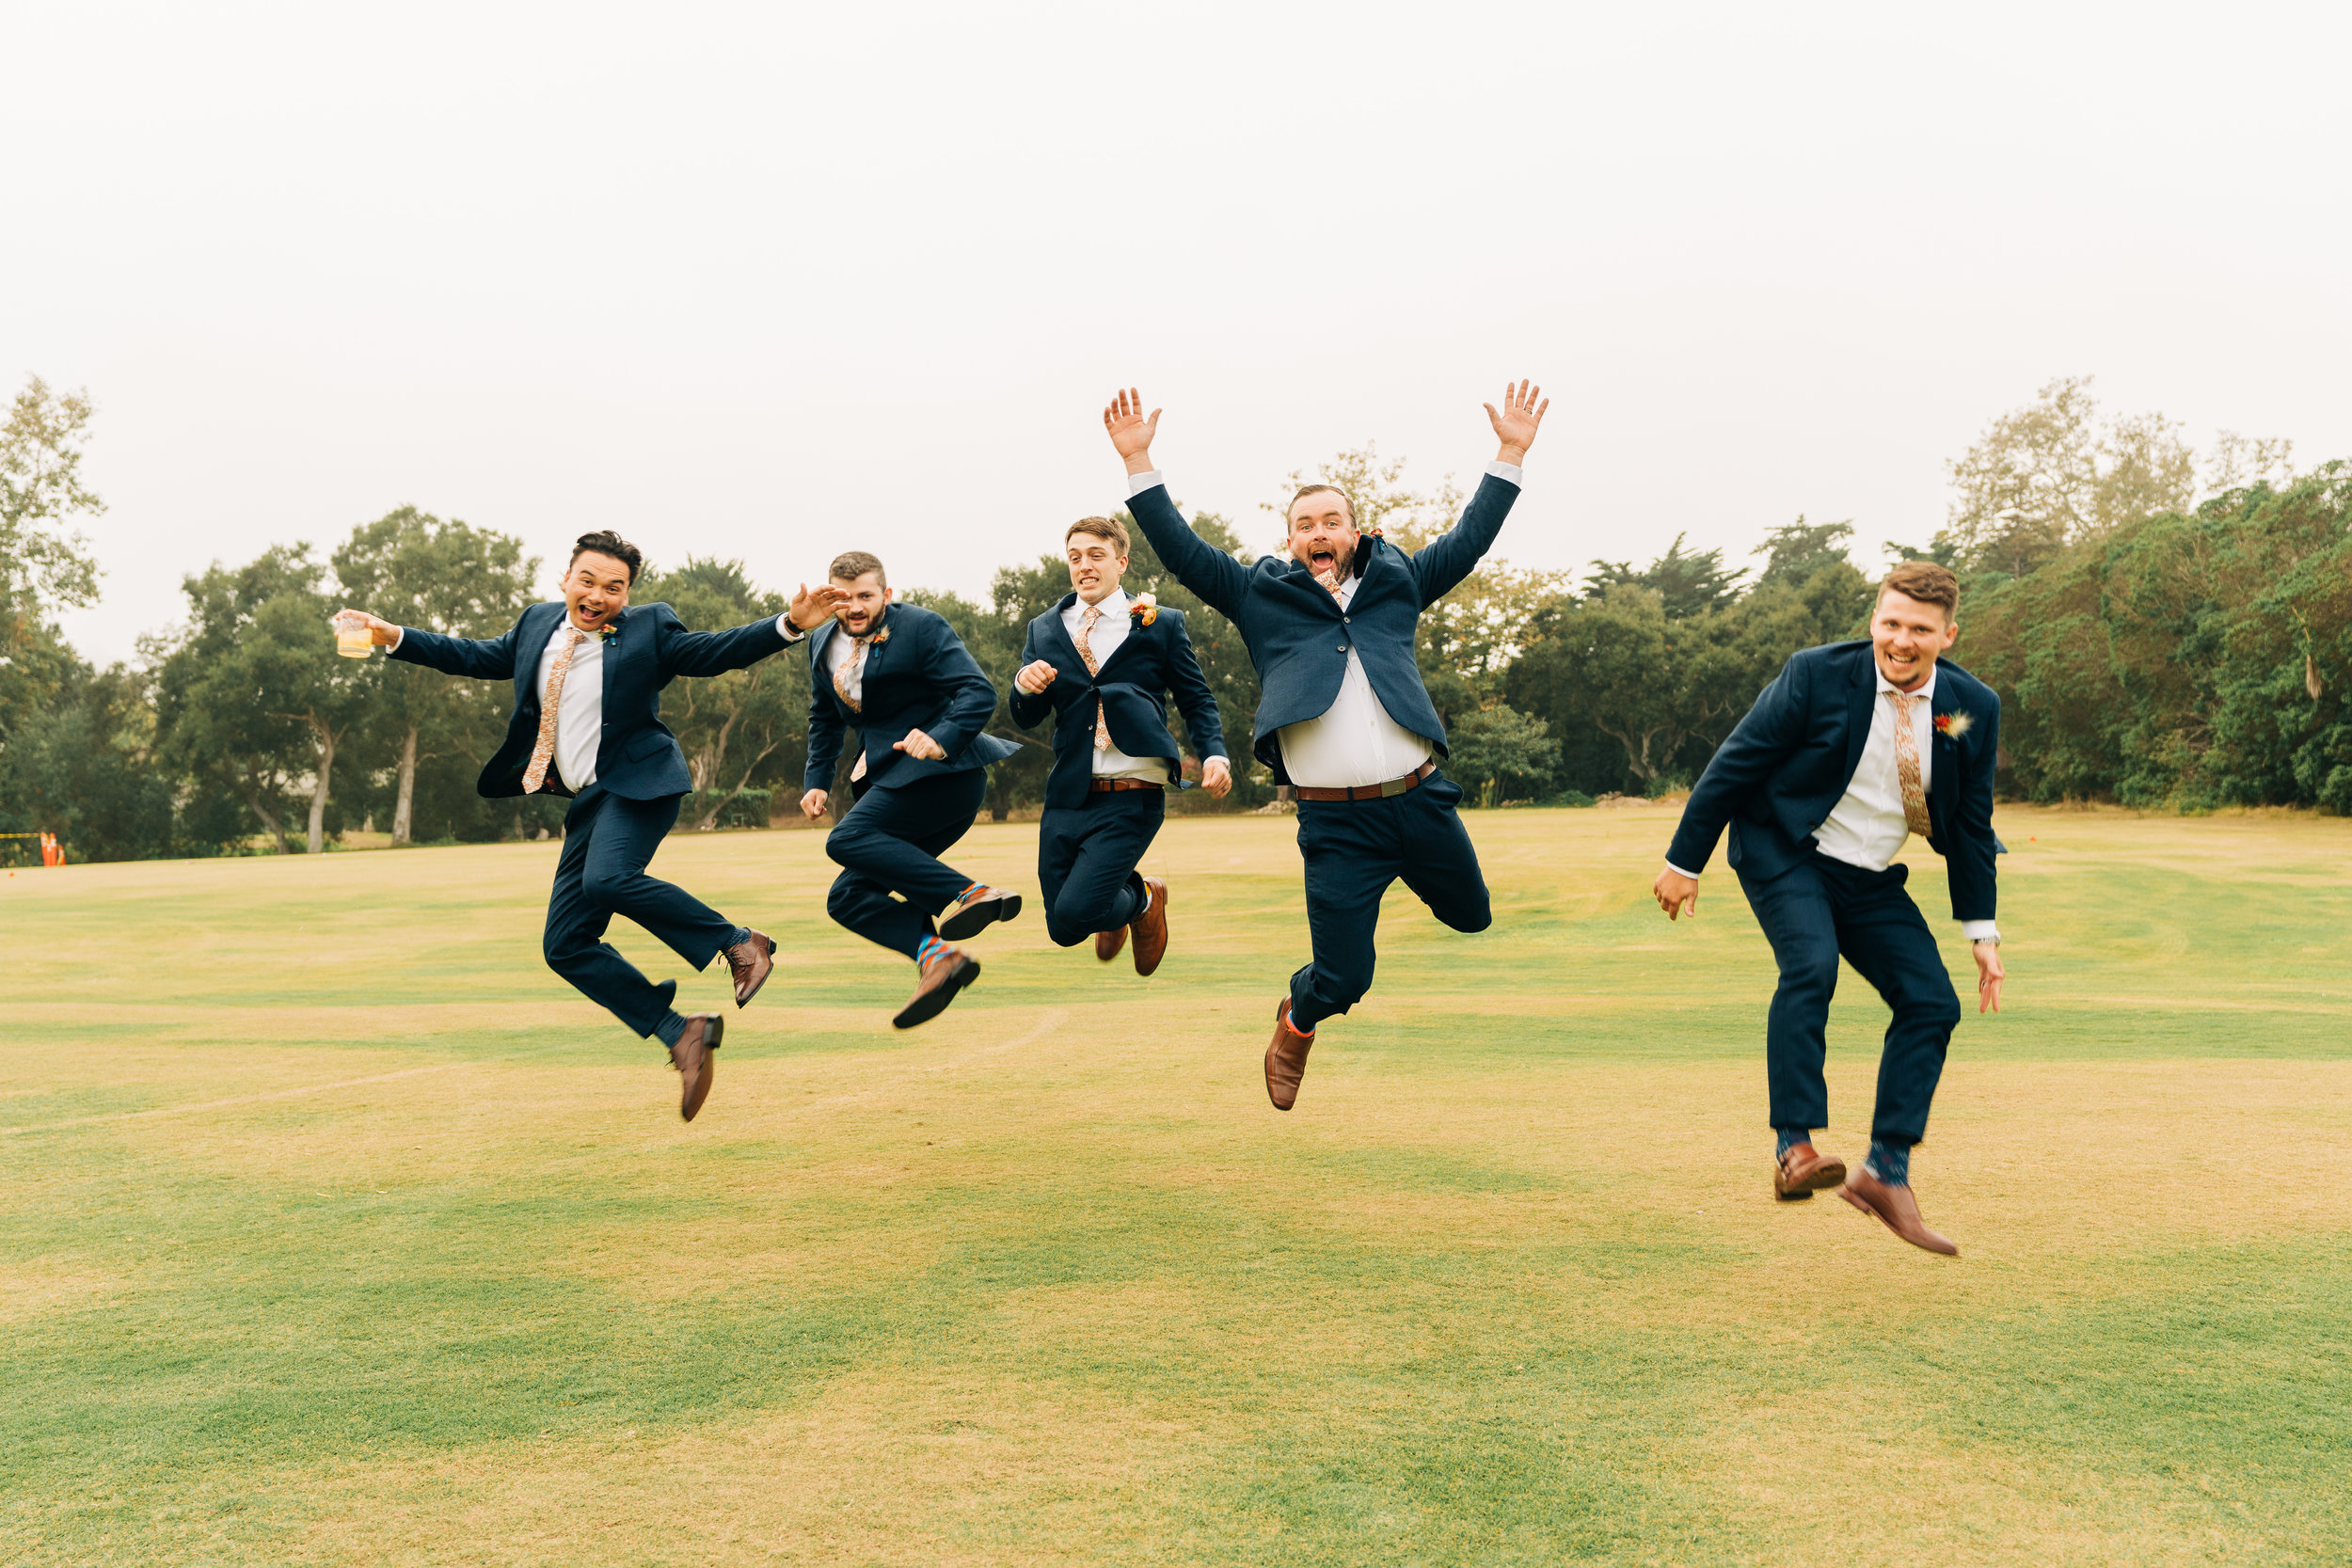 www.santabarbarawedding.com | Brandon Bibbins Photography | The Cottages at Polo Run | Groomsmen Jumping